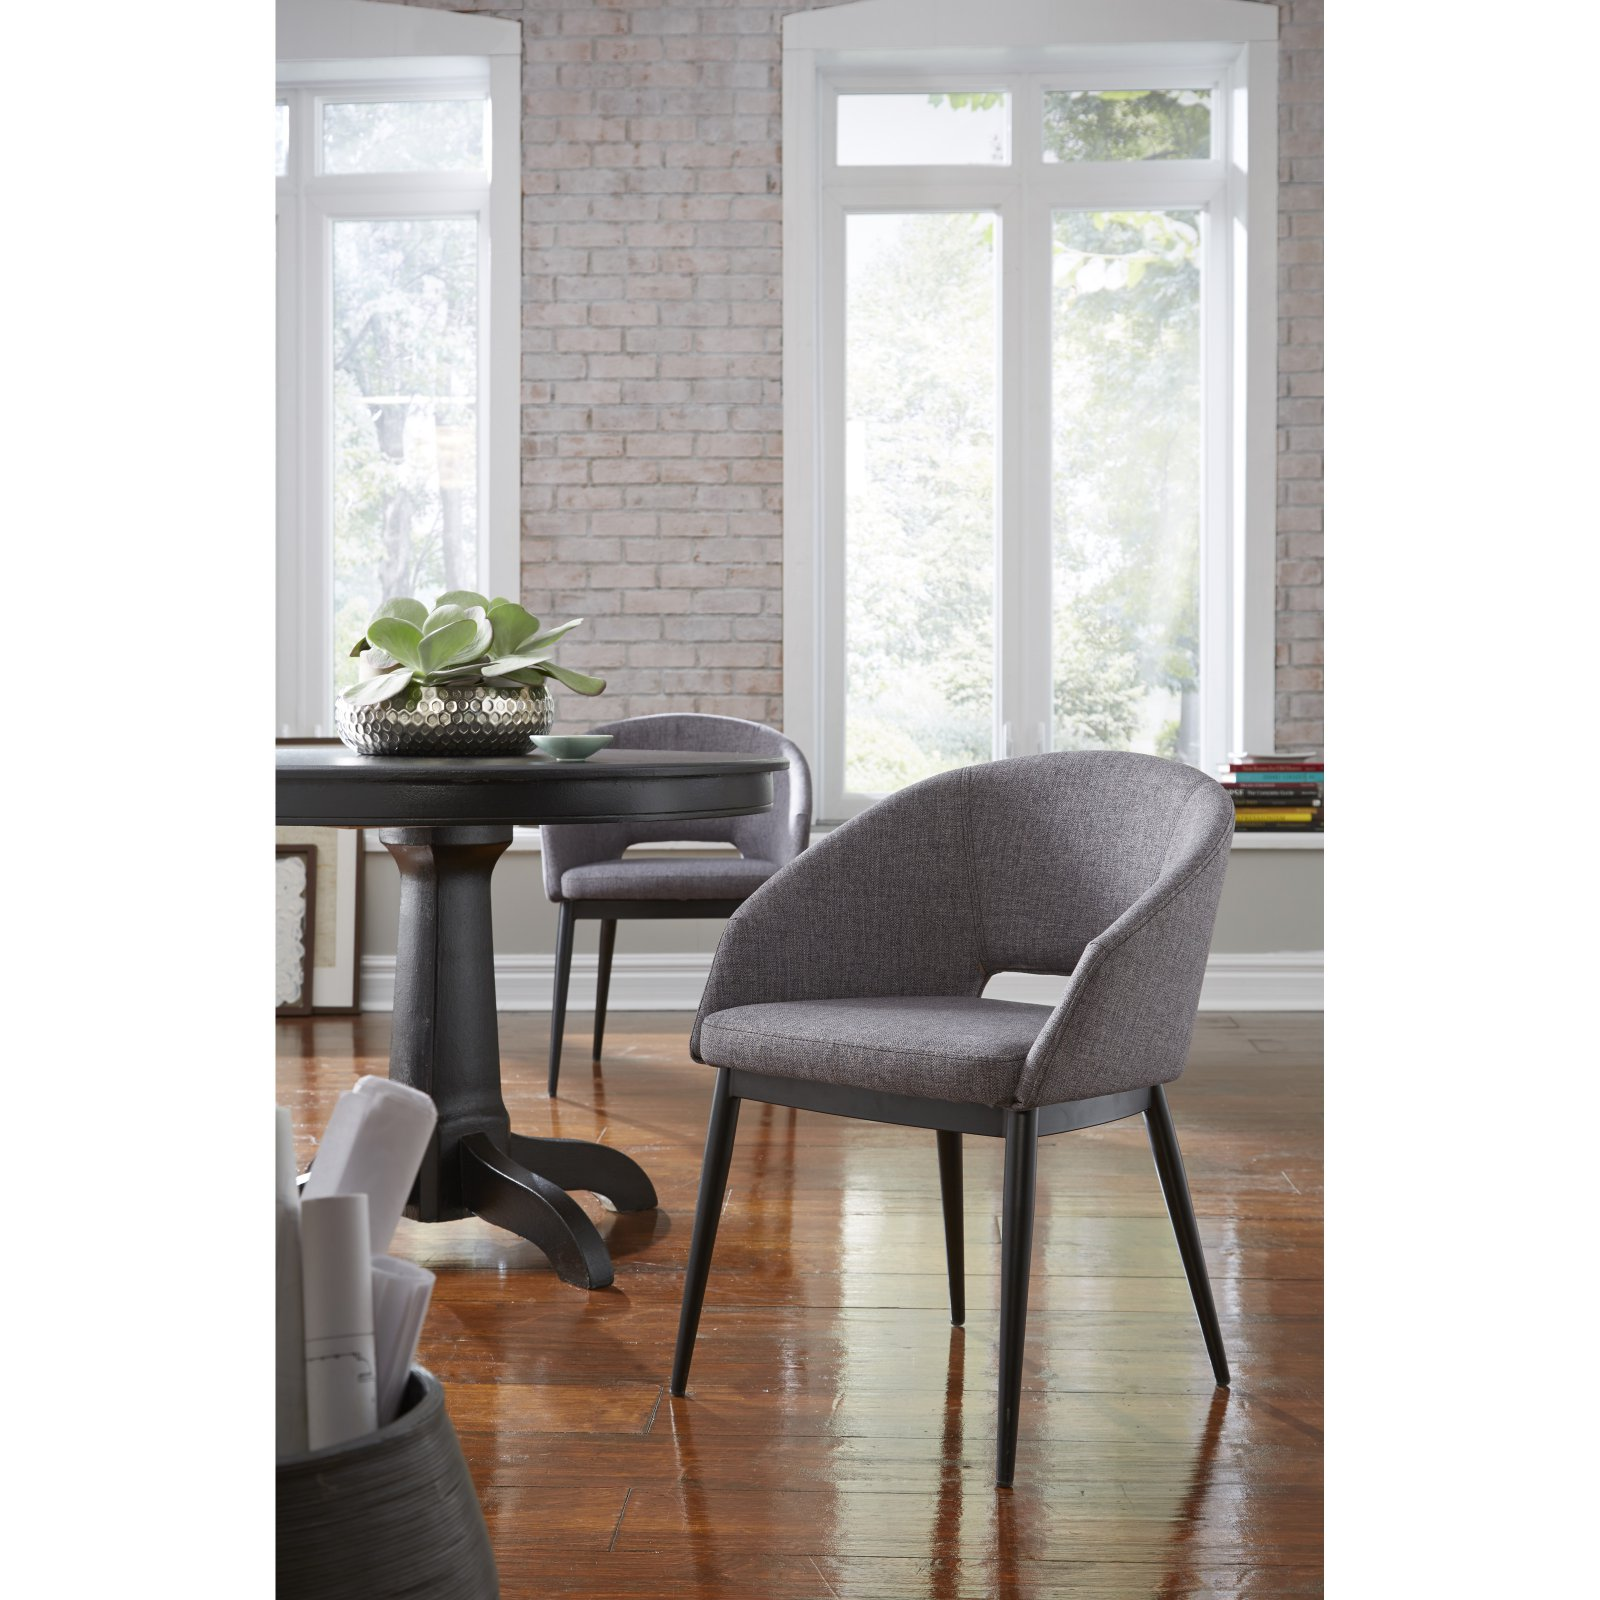 Modus Park Place Upholstered Dining Chair by Modus Furniture International